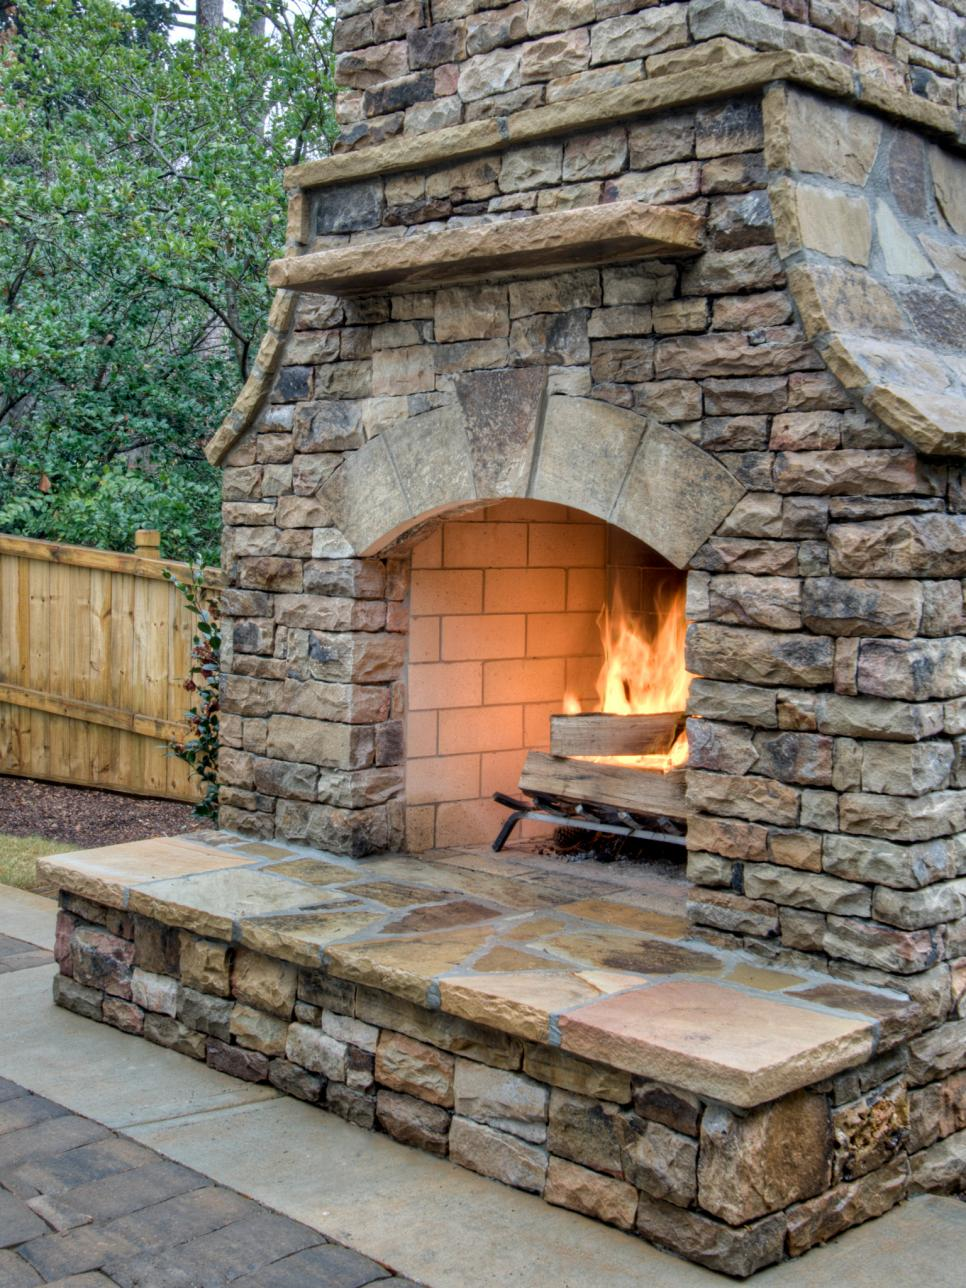 open gallery8 photos - Outdoor Fireplace Design Ideas